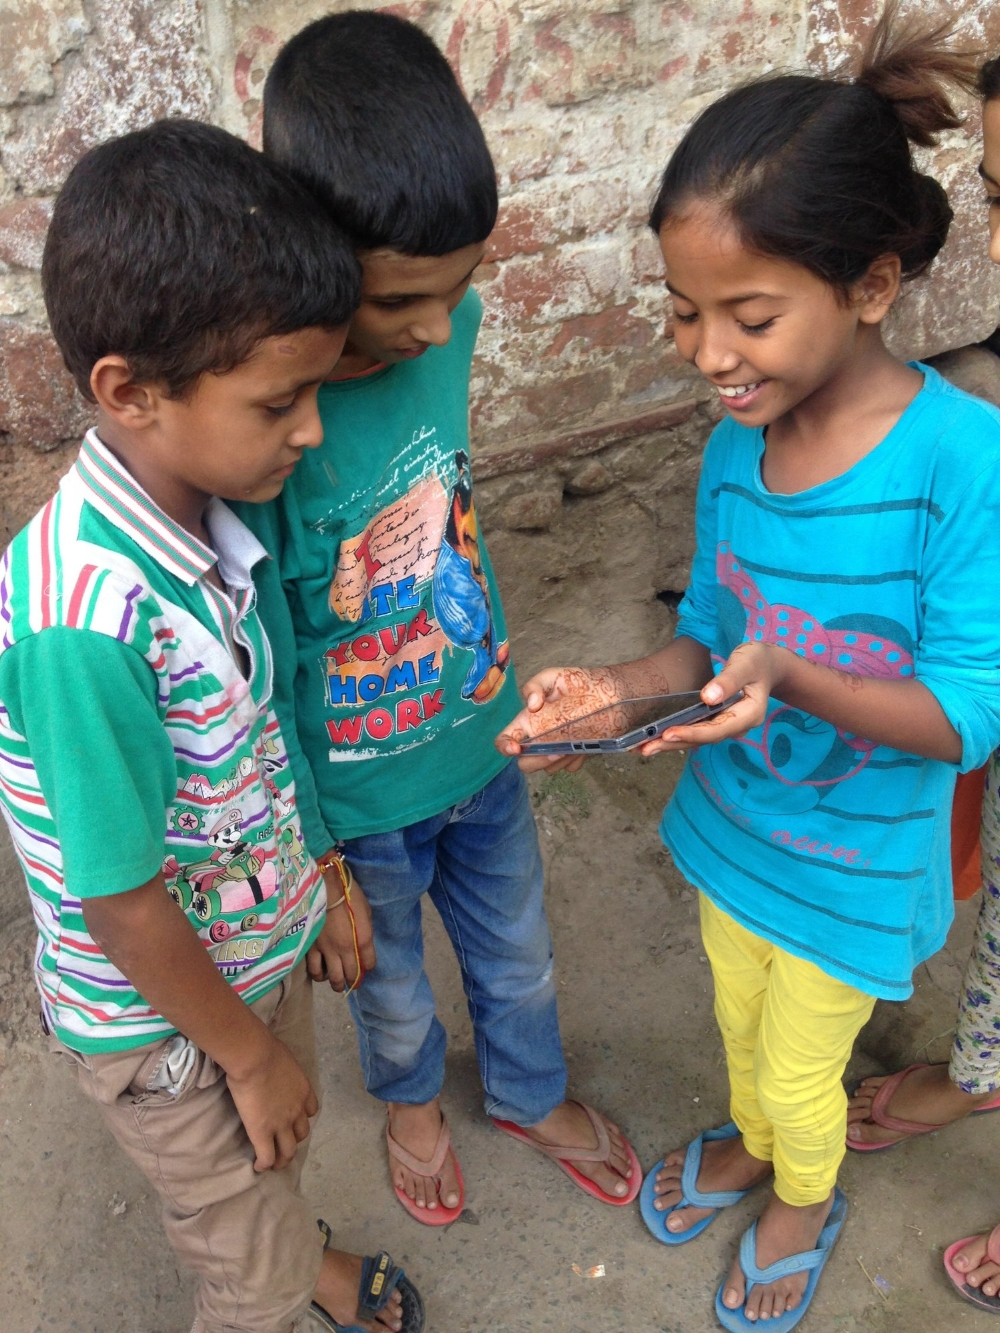 Kanchan sharing a cricket tutorial video with two boys to help them learn how to bat